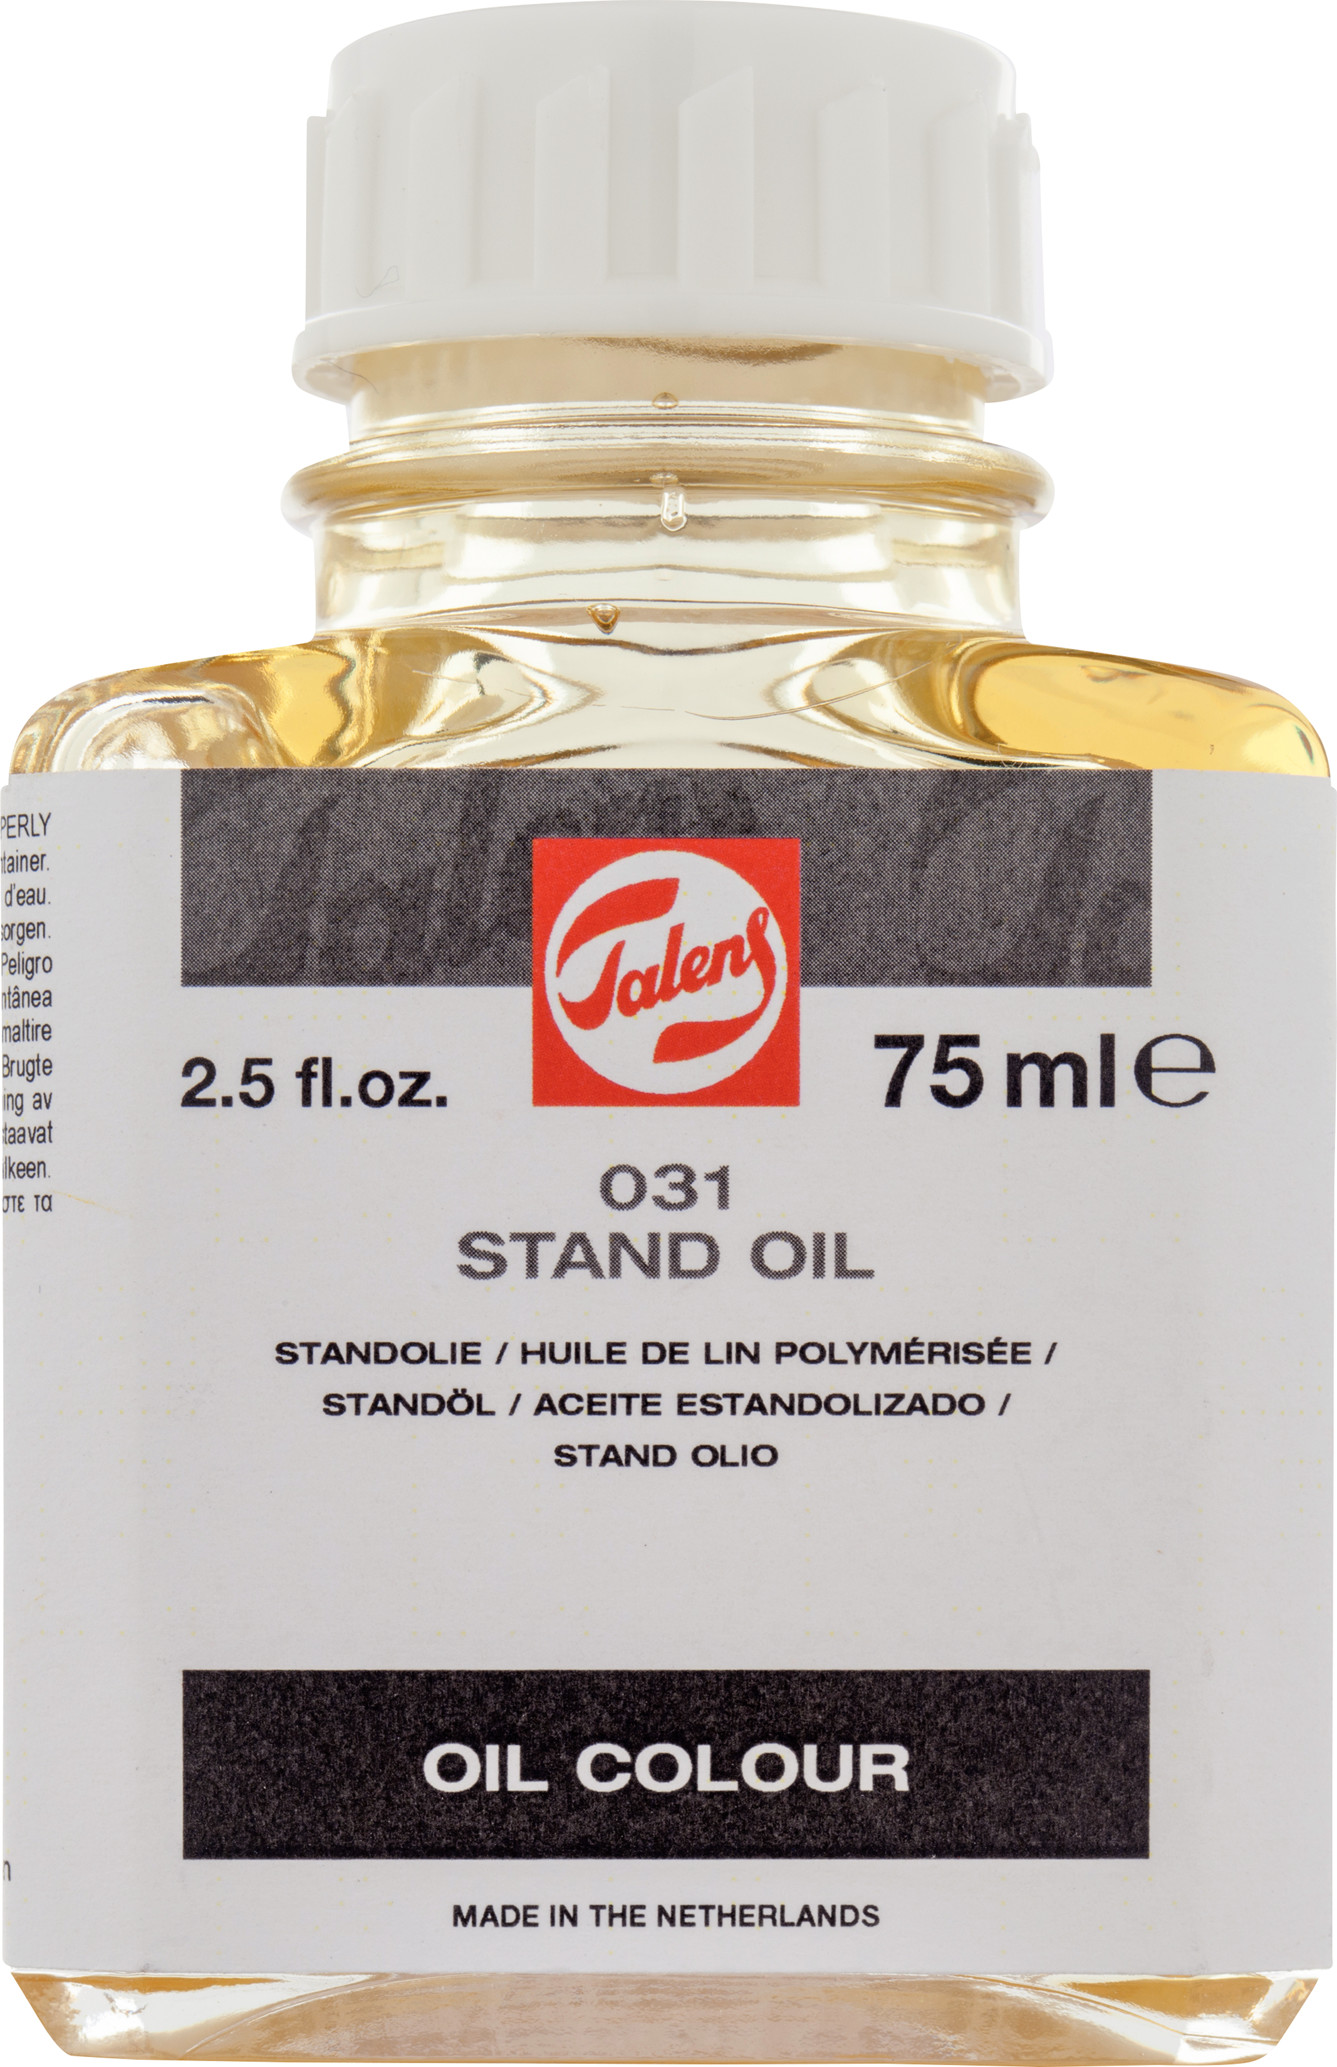 Stand Oil Bottle 75 ml